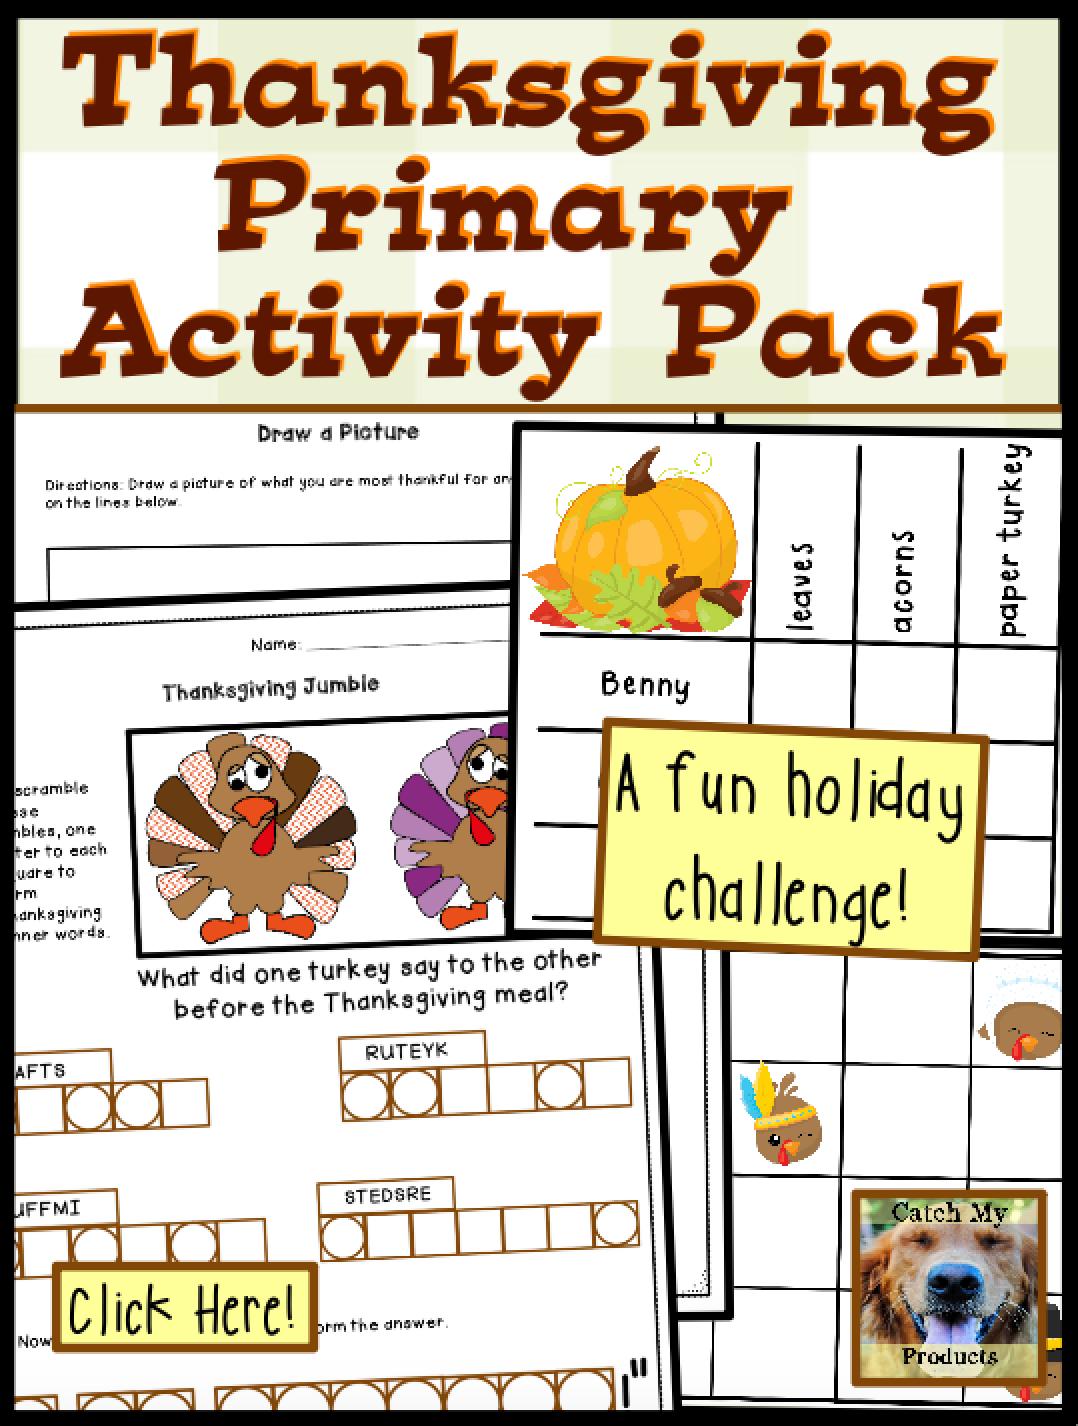 Printable Logic Puzzle And Sudoku Thanksgiving Worksheets